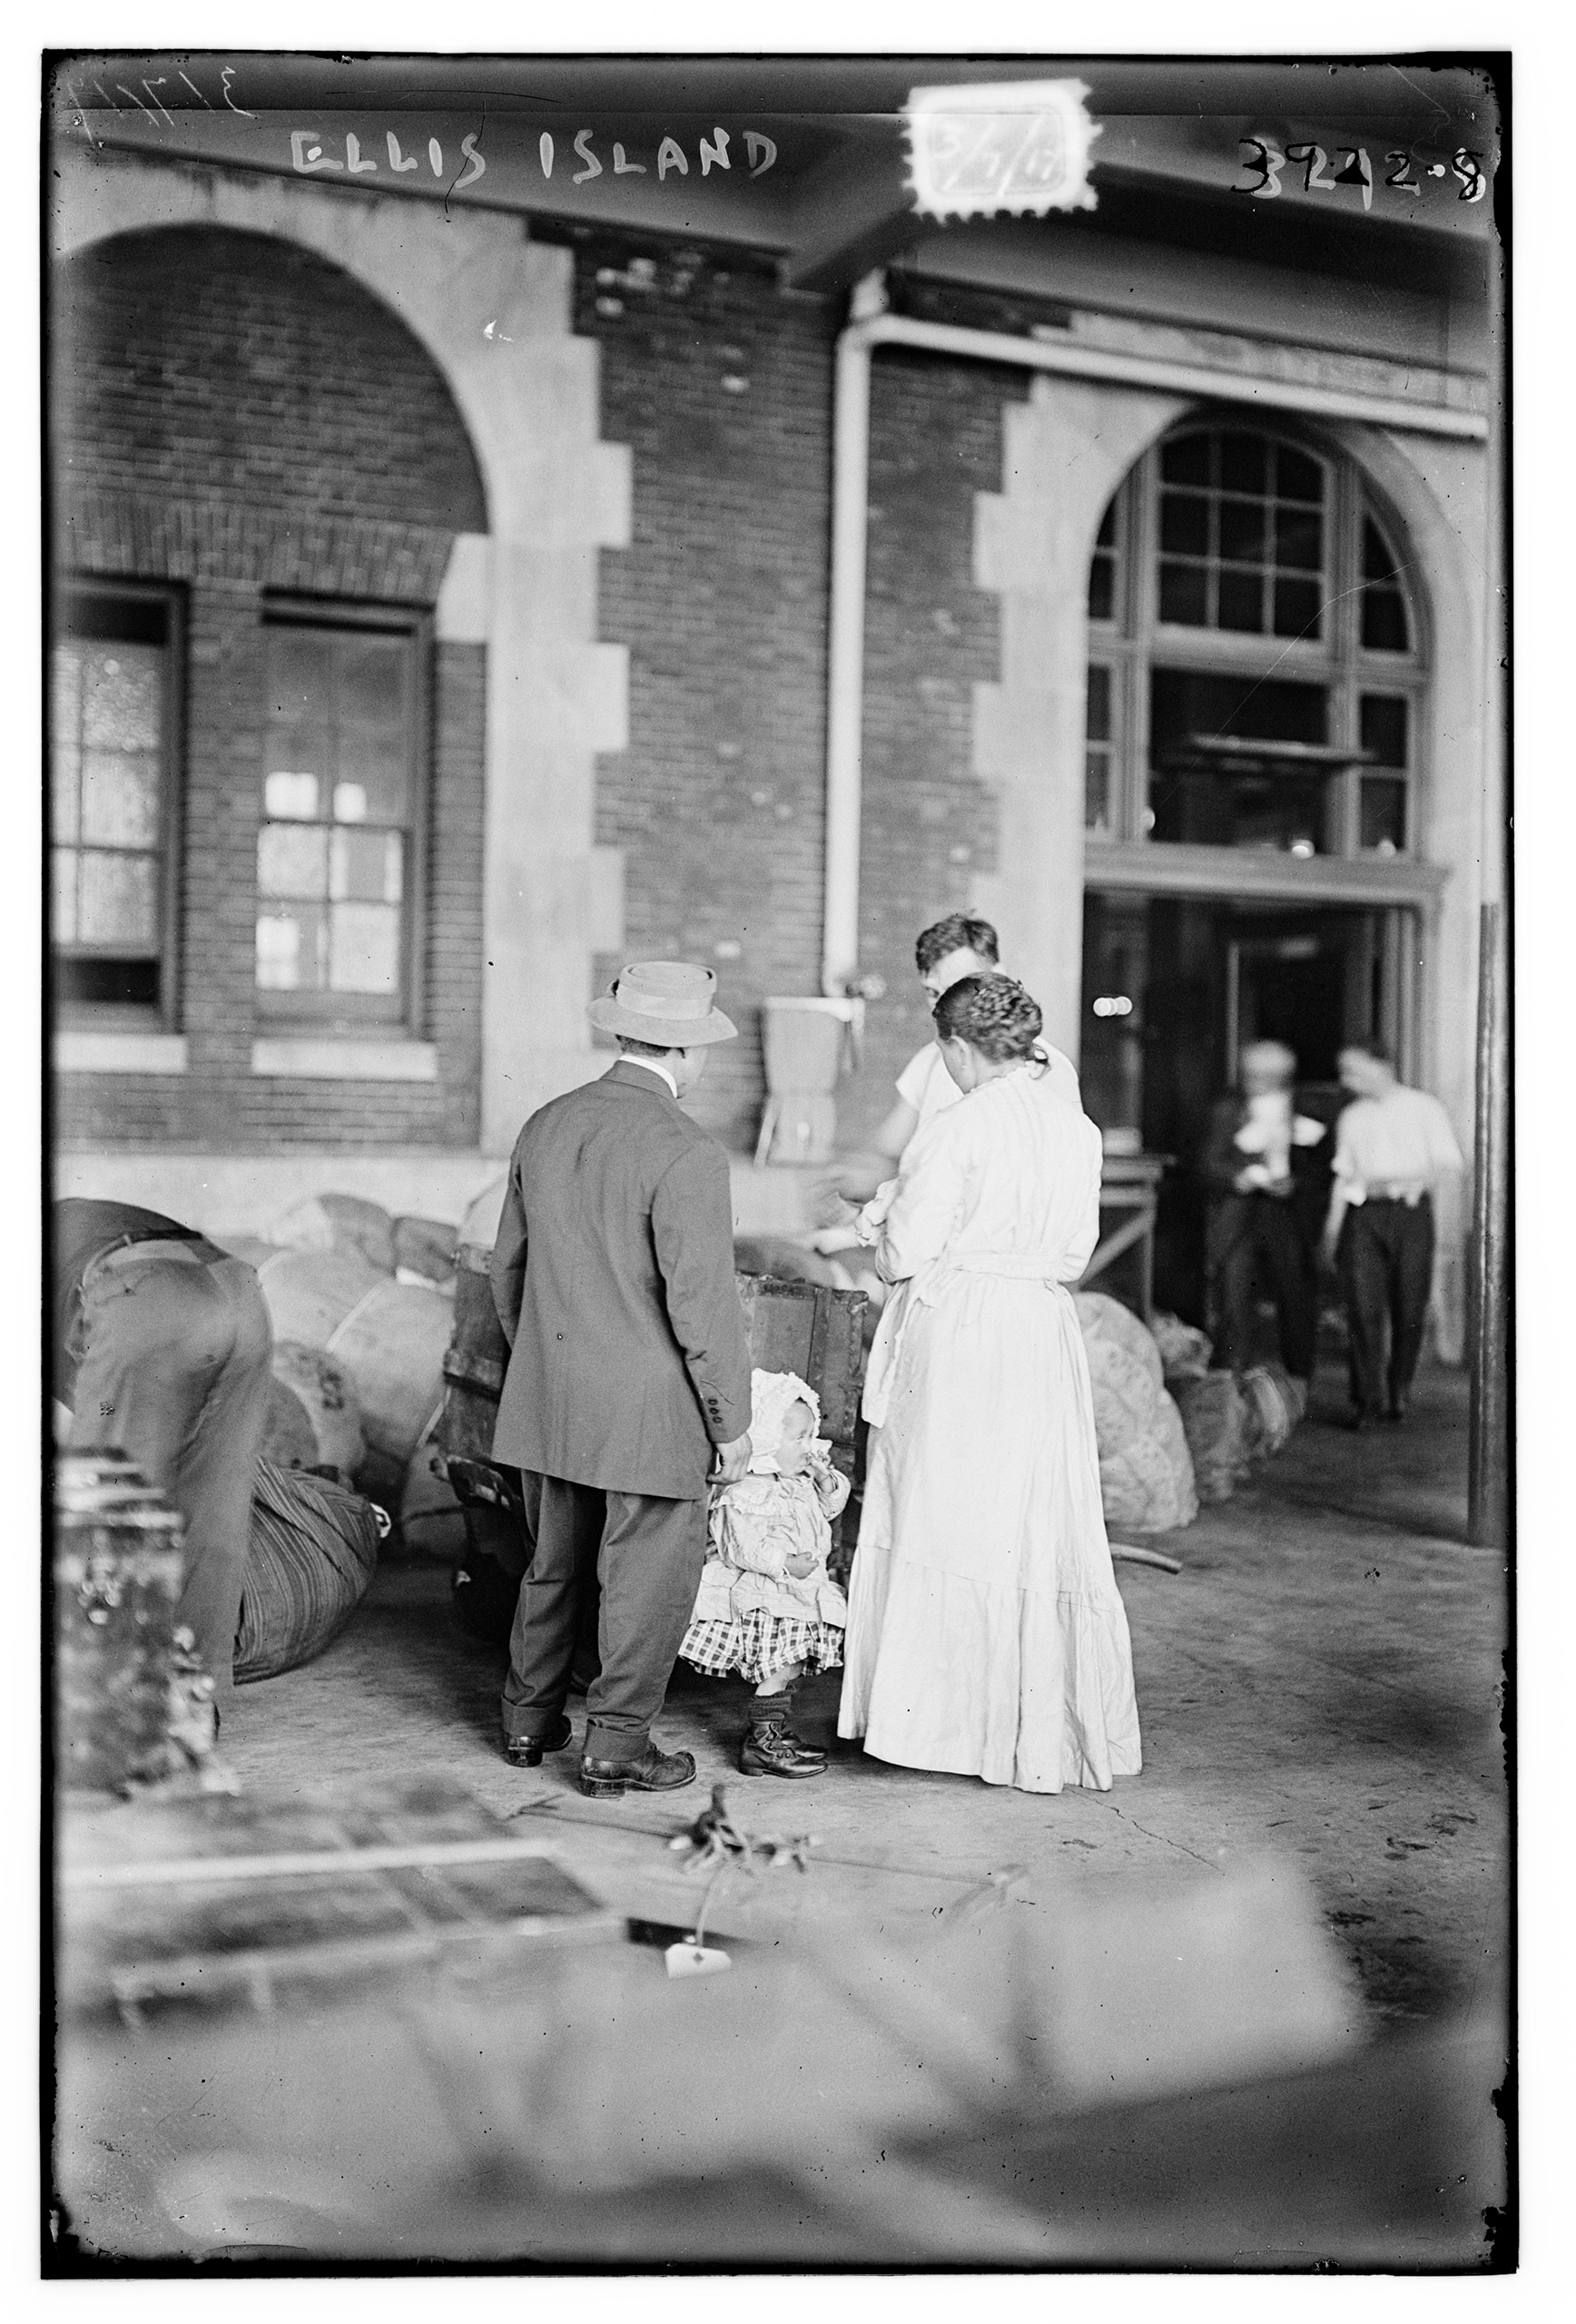 Immigrant family at Ellis Island. New York City. March 1917.